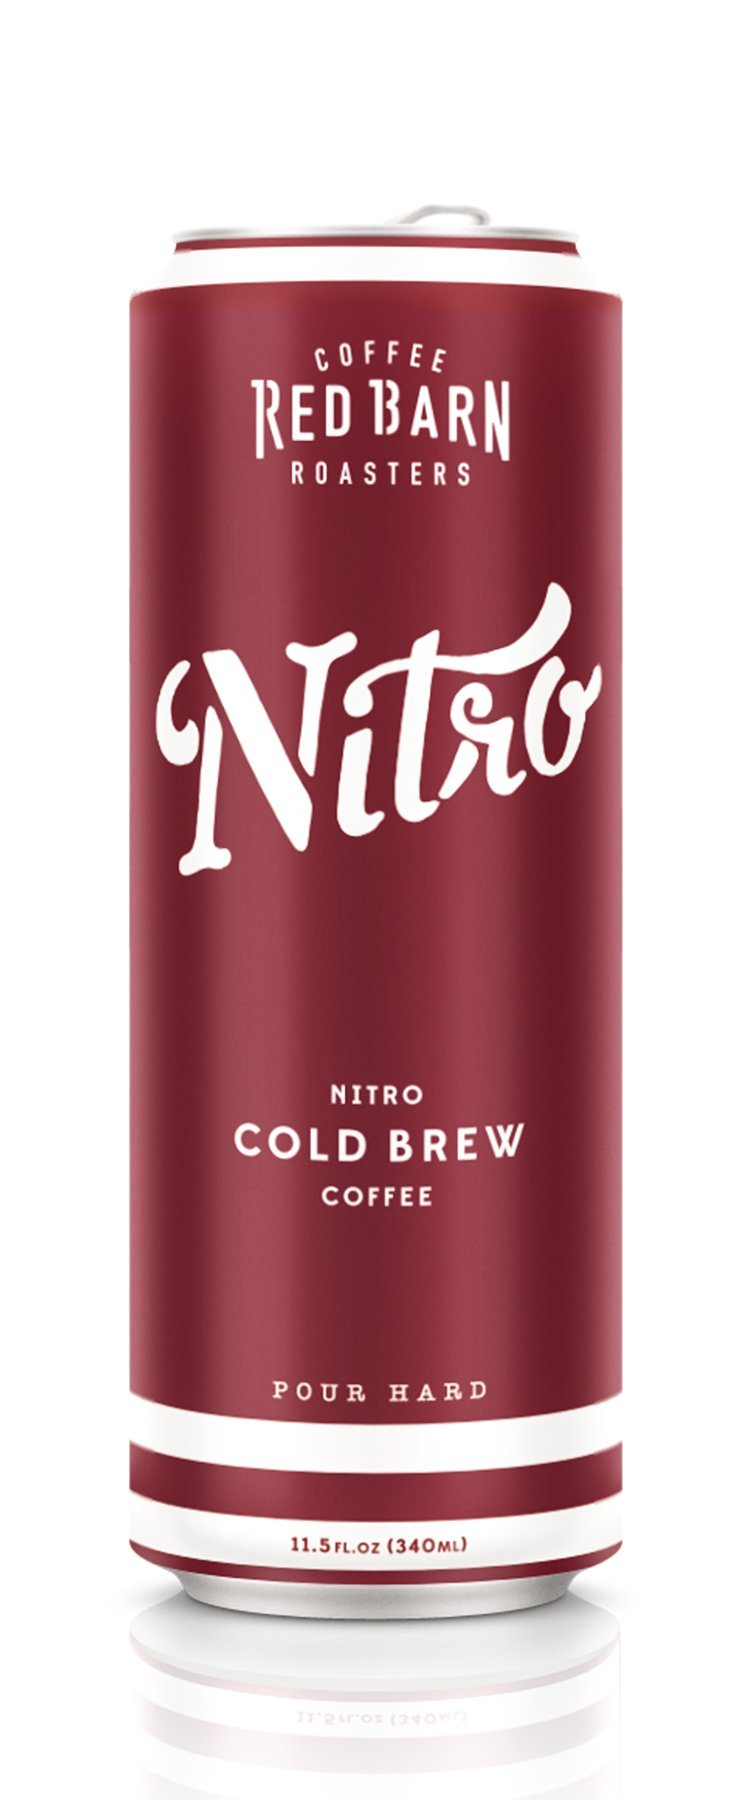 Rise Brewing Co Original Black Nitro Cold Brew Coffee